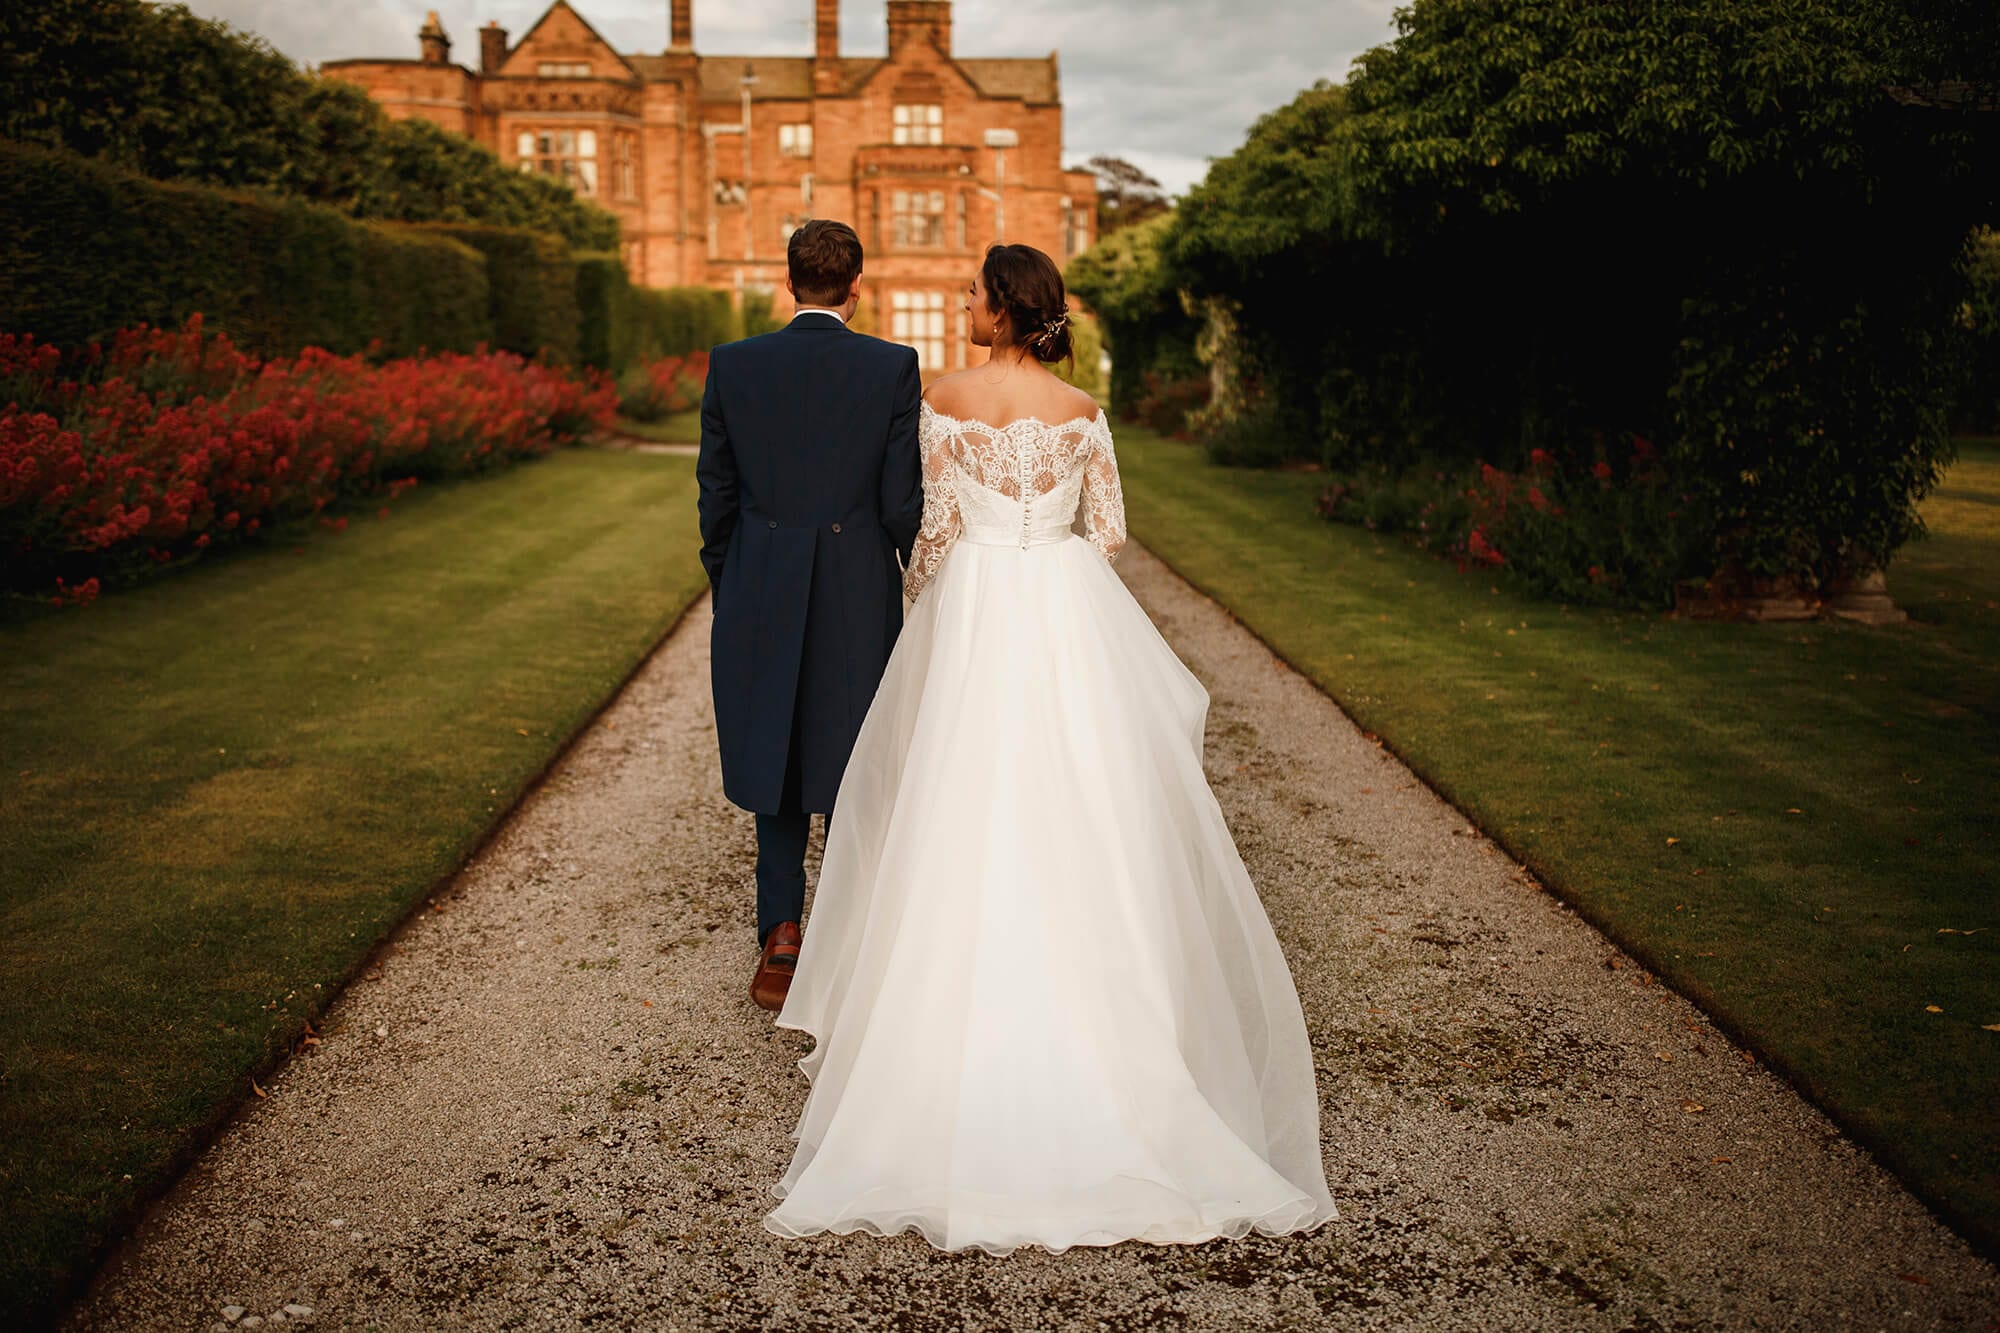 Bride and groom walking to Thornton Manor House